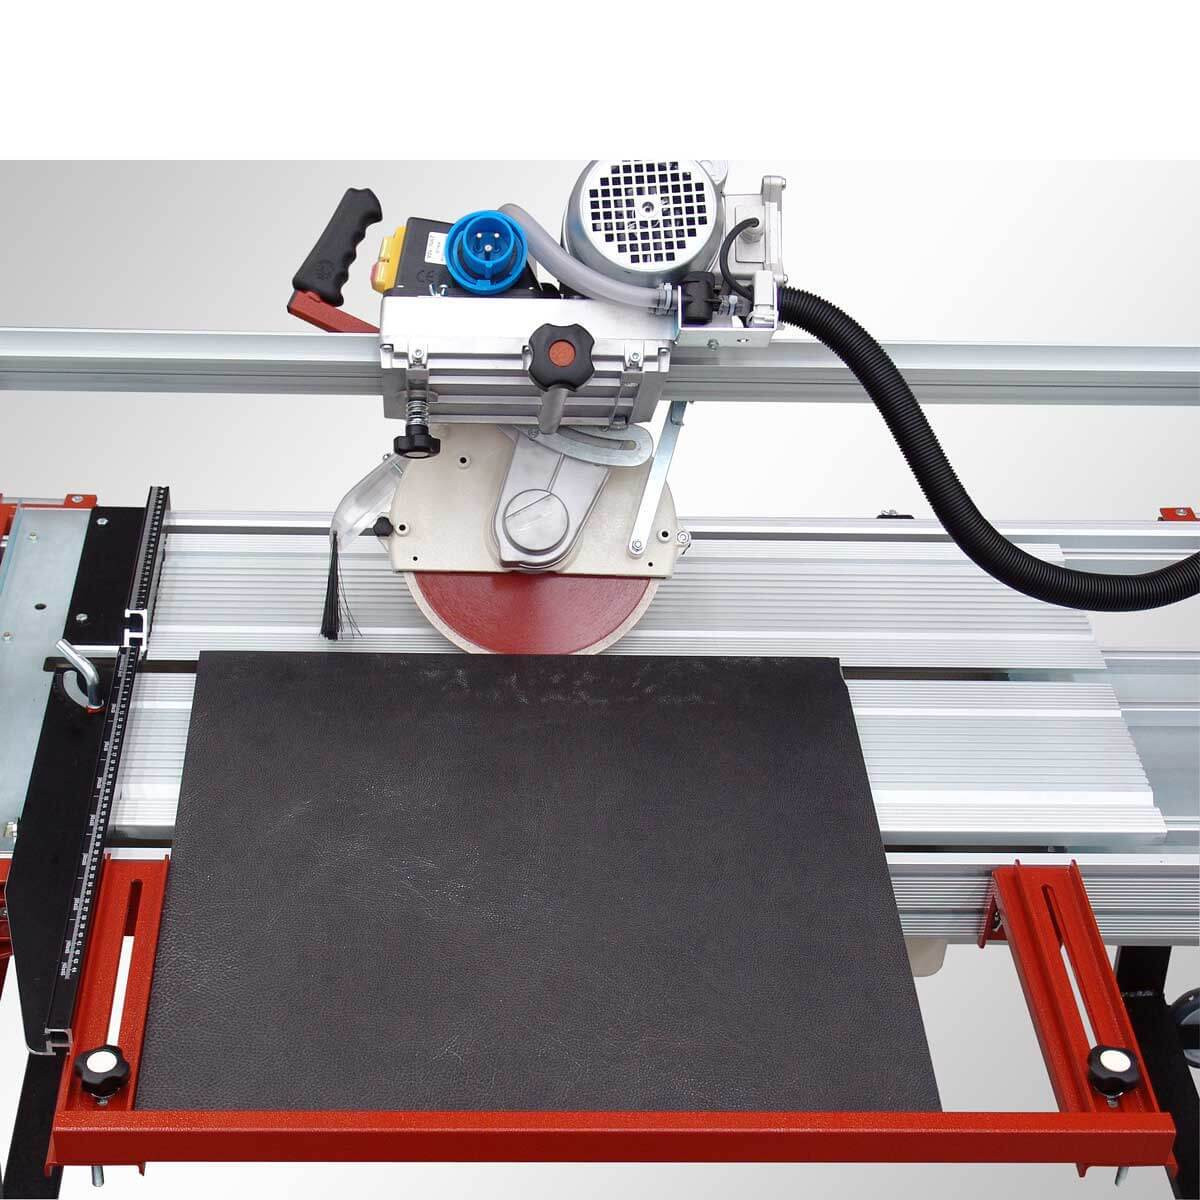 Raimondi Rail saw cutting tile with extension side square